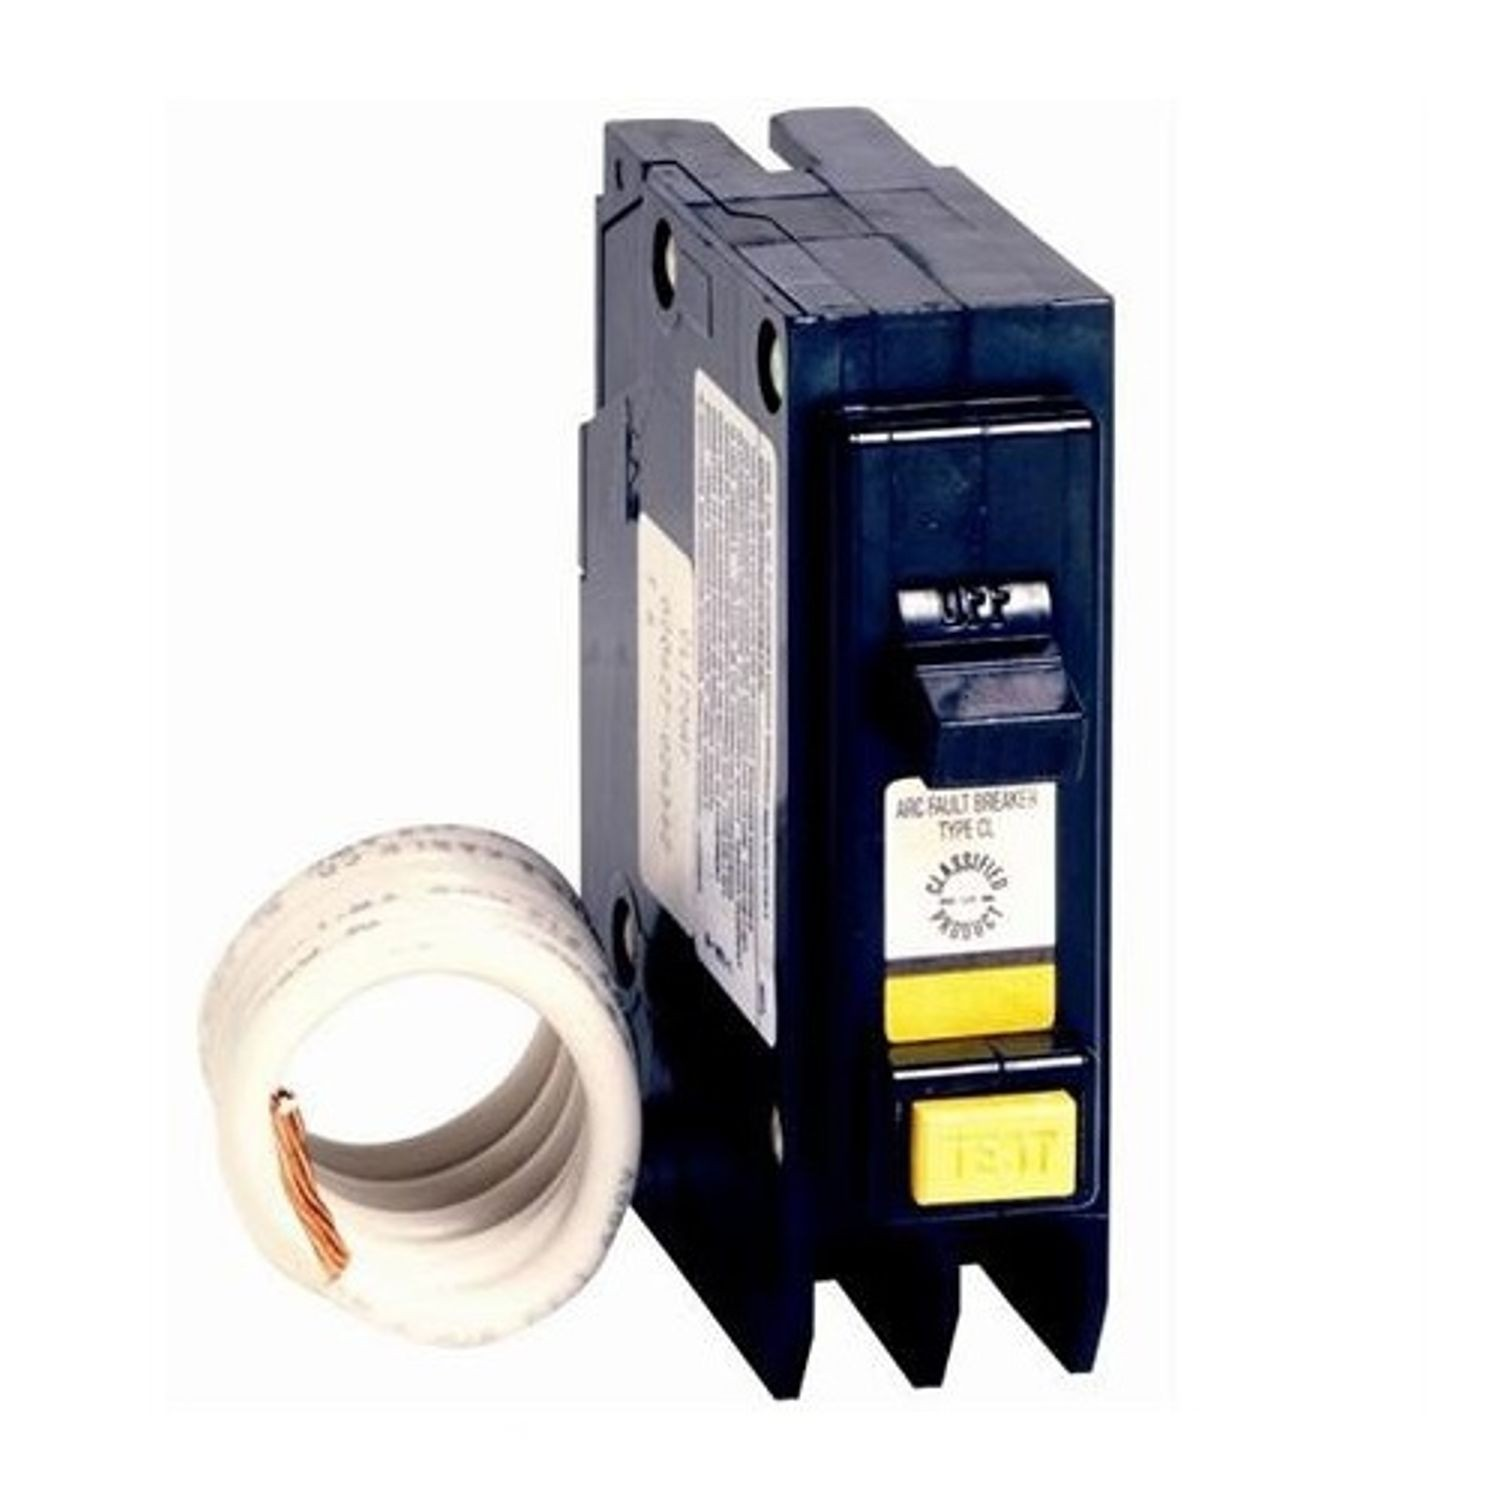 Cutler Hammer Cl120af Arc Fault Circuit Breaker Type Ch 120 240 Breakers Vac 20 A 10 Kaic 1 Pole